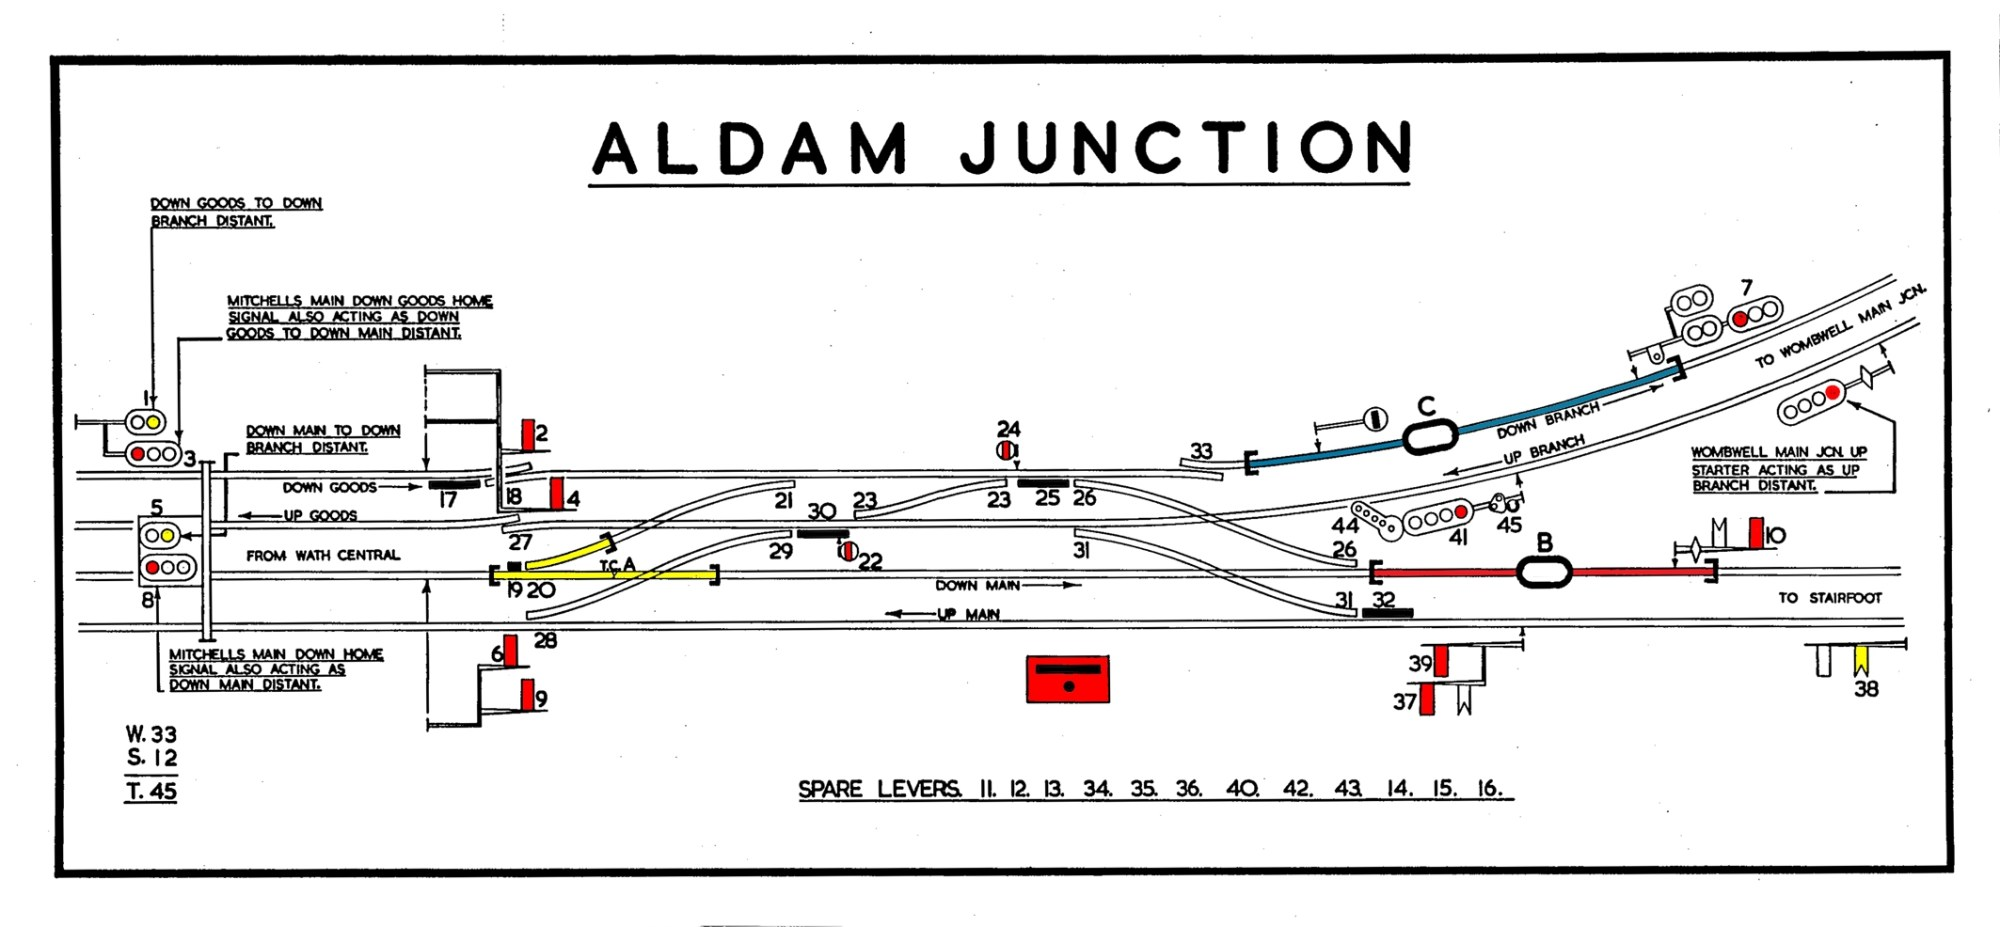 hight resolution of aldam junction sbd the final layout before closure diagram is dated 1982 the worsborough branch and also wombwell main junction had closed the